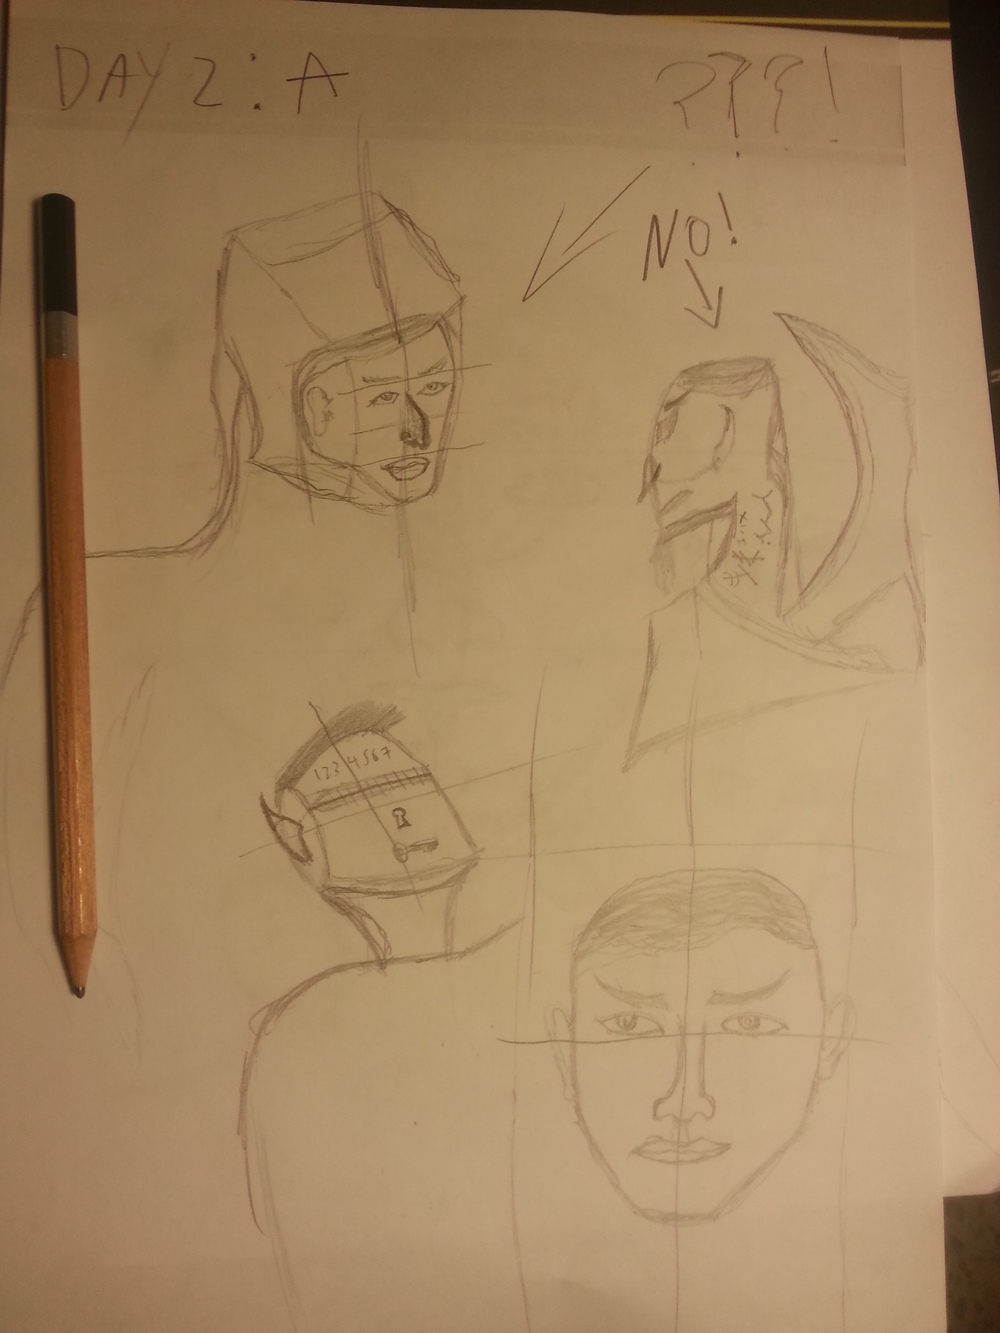 """Day 2: """"A"""". Analogies are still way off. Tried some different angles. Since there is no eraser involved I found a new way of dealing with mistakes. The word """"No"""" works wonders I think."""